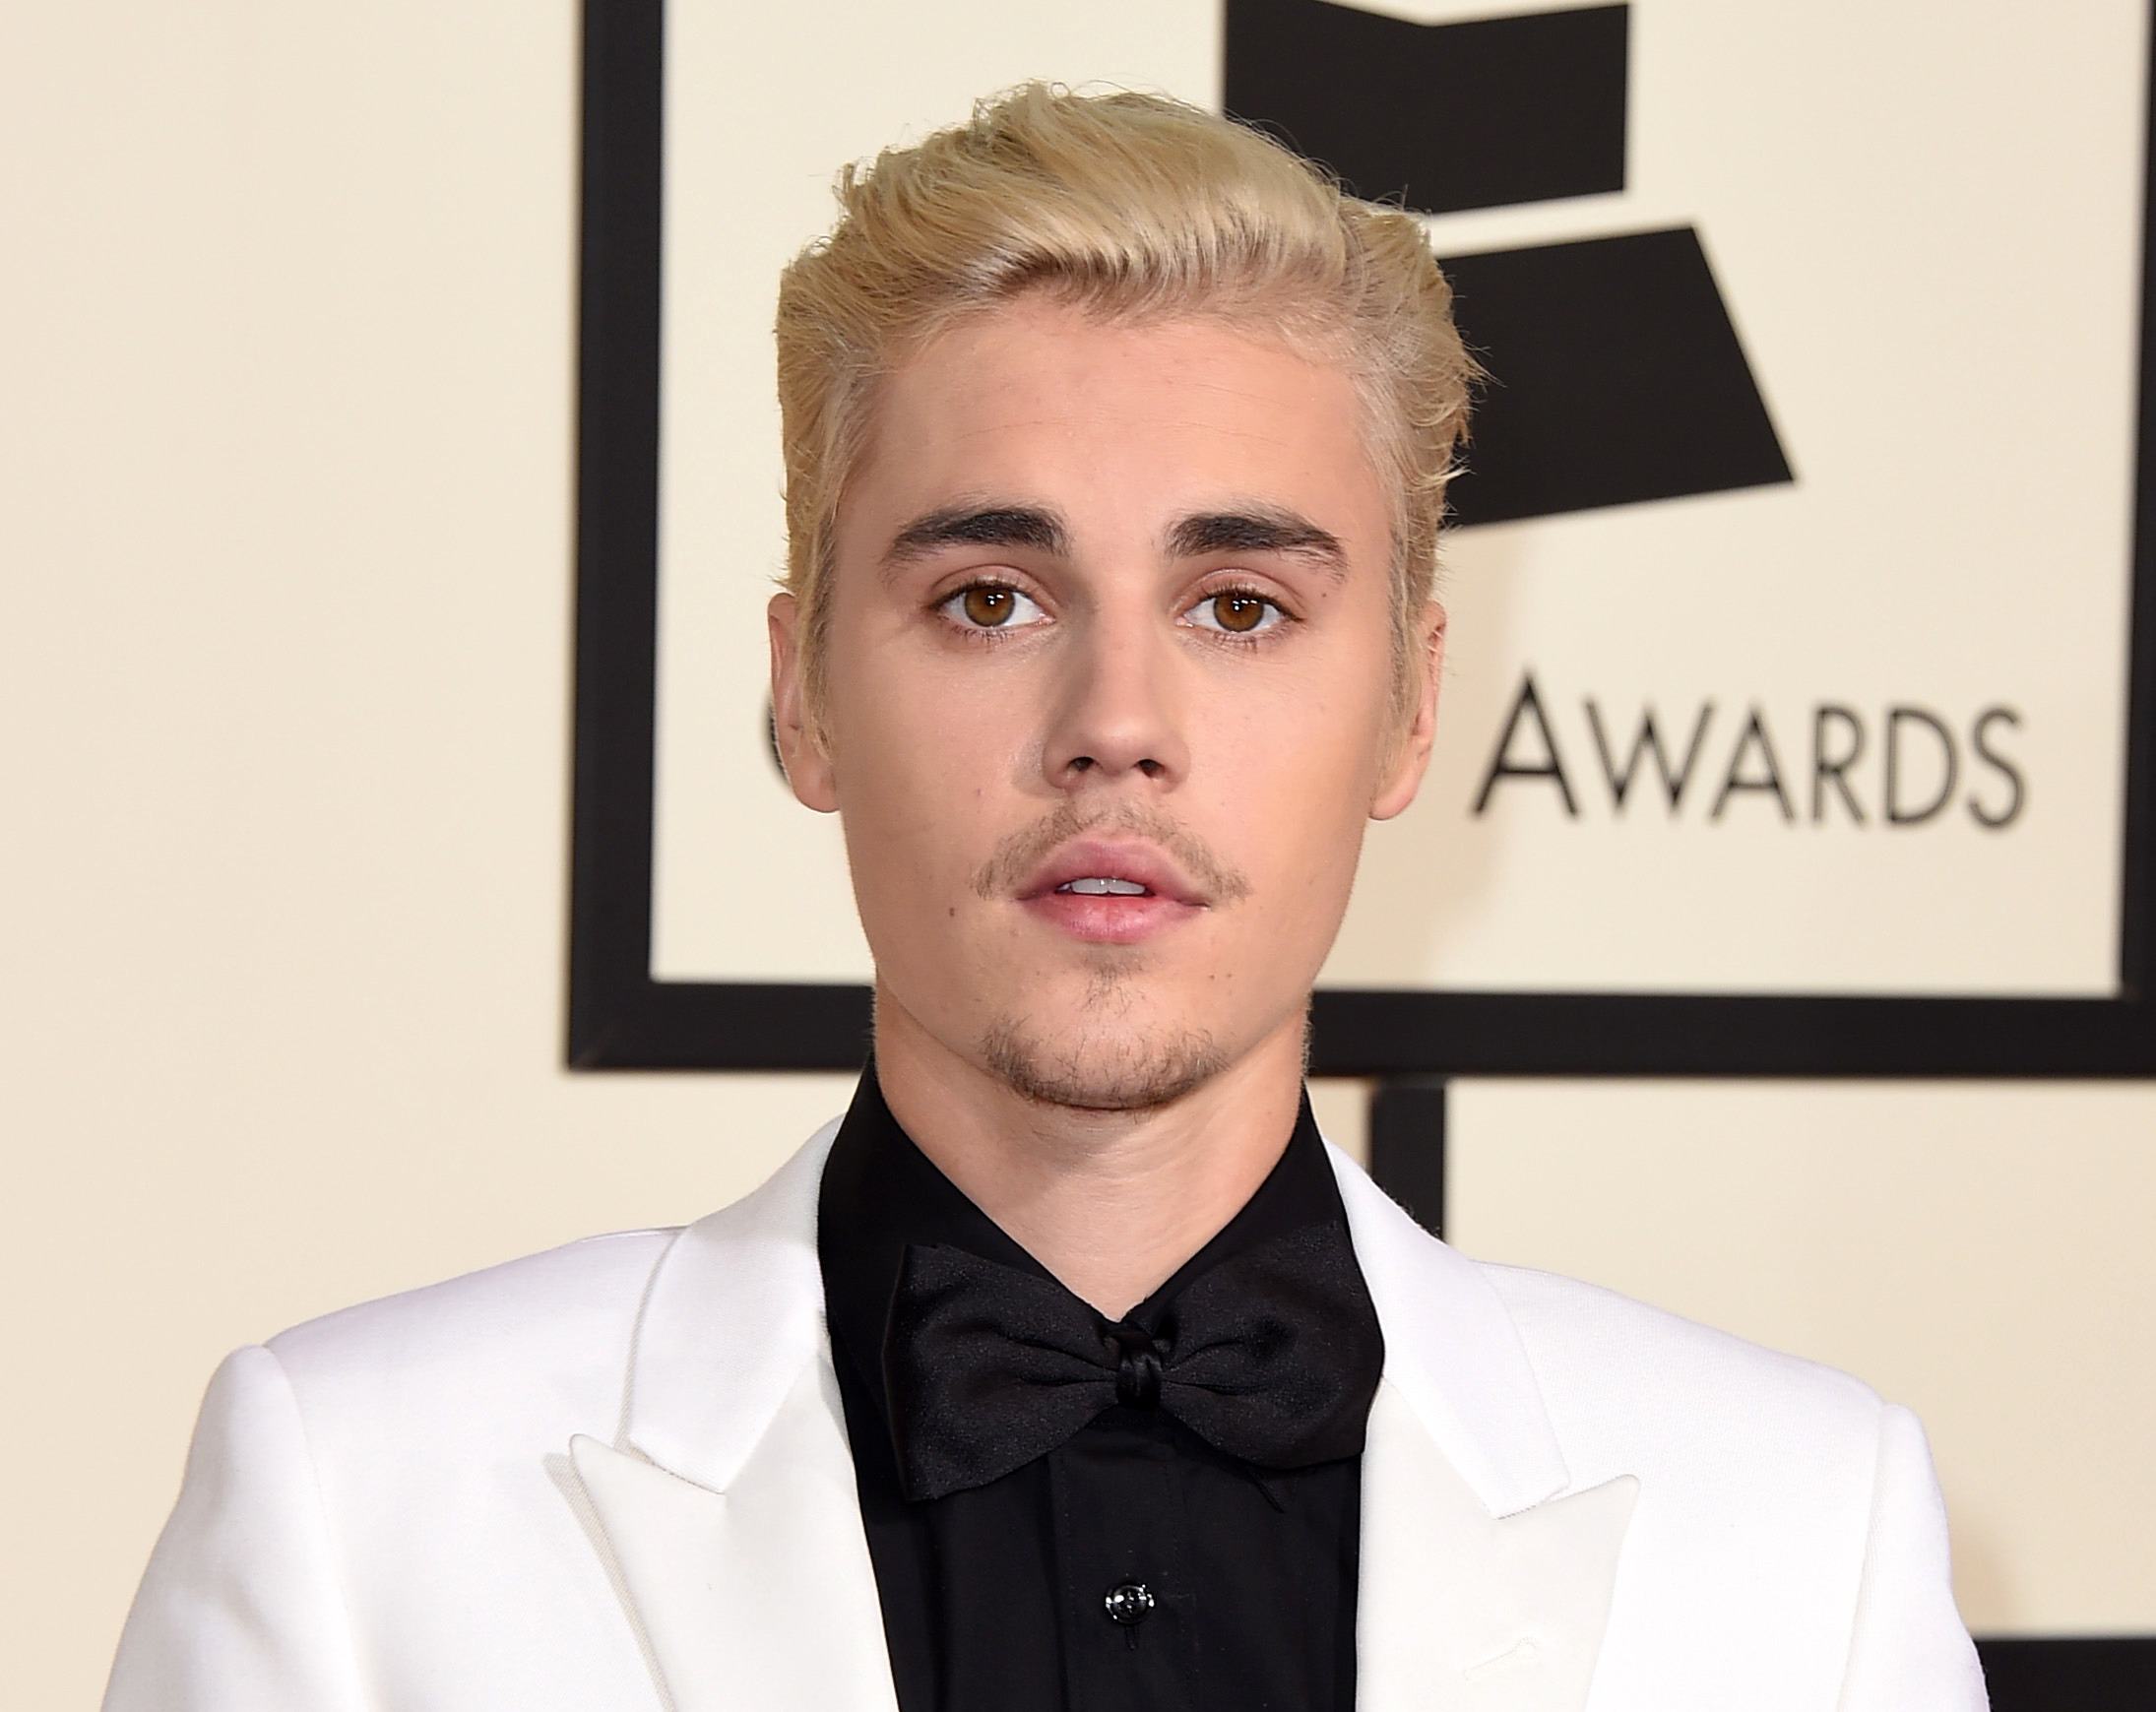 PA 25845854 Bieber Sued For $100K For Being An Utter W*nker